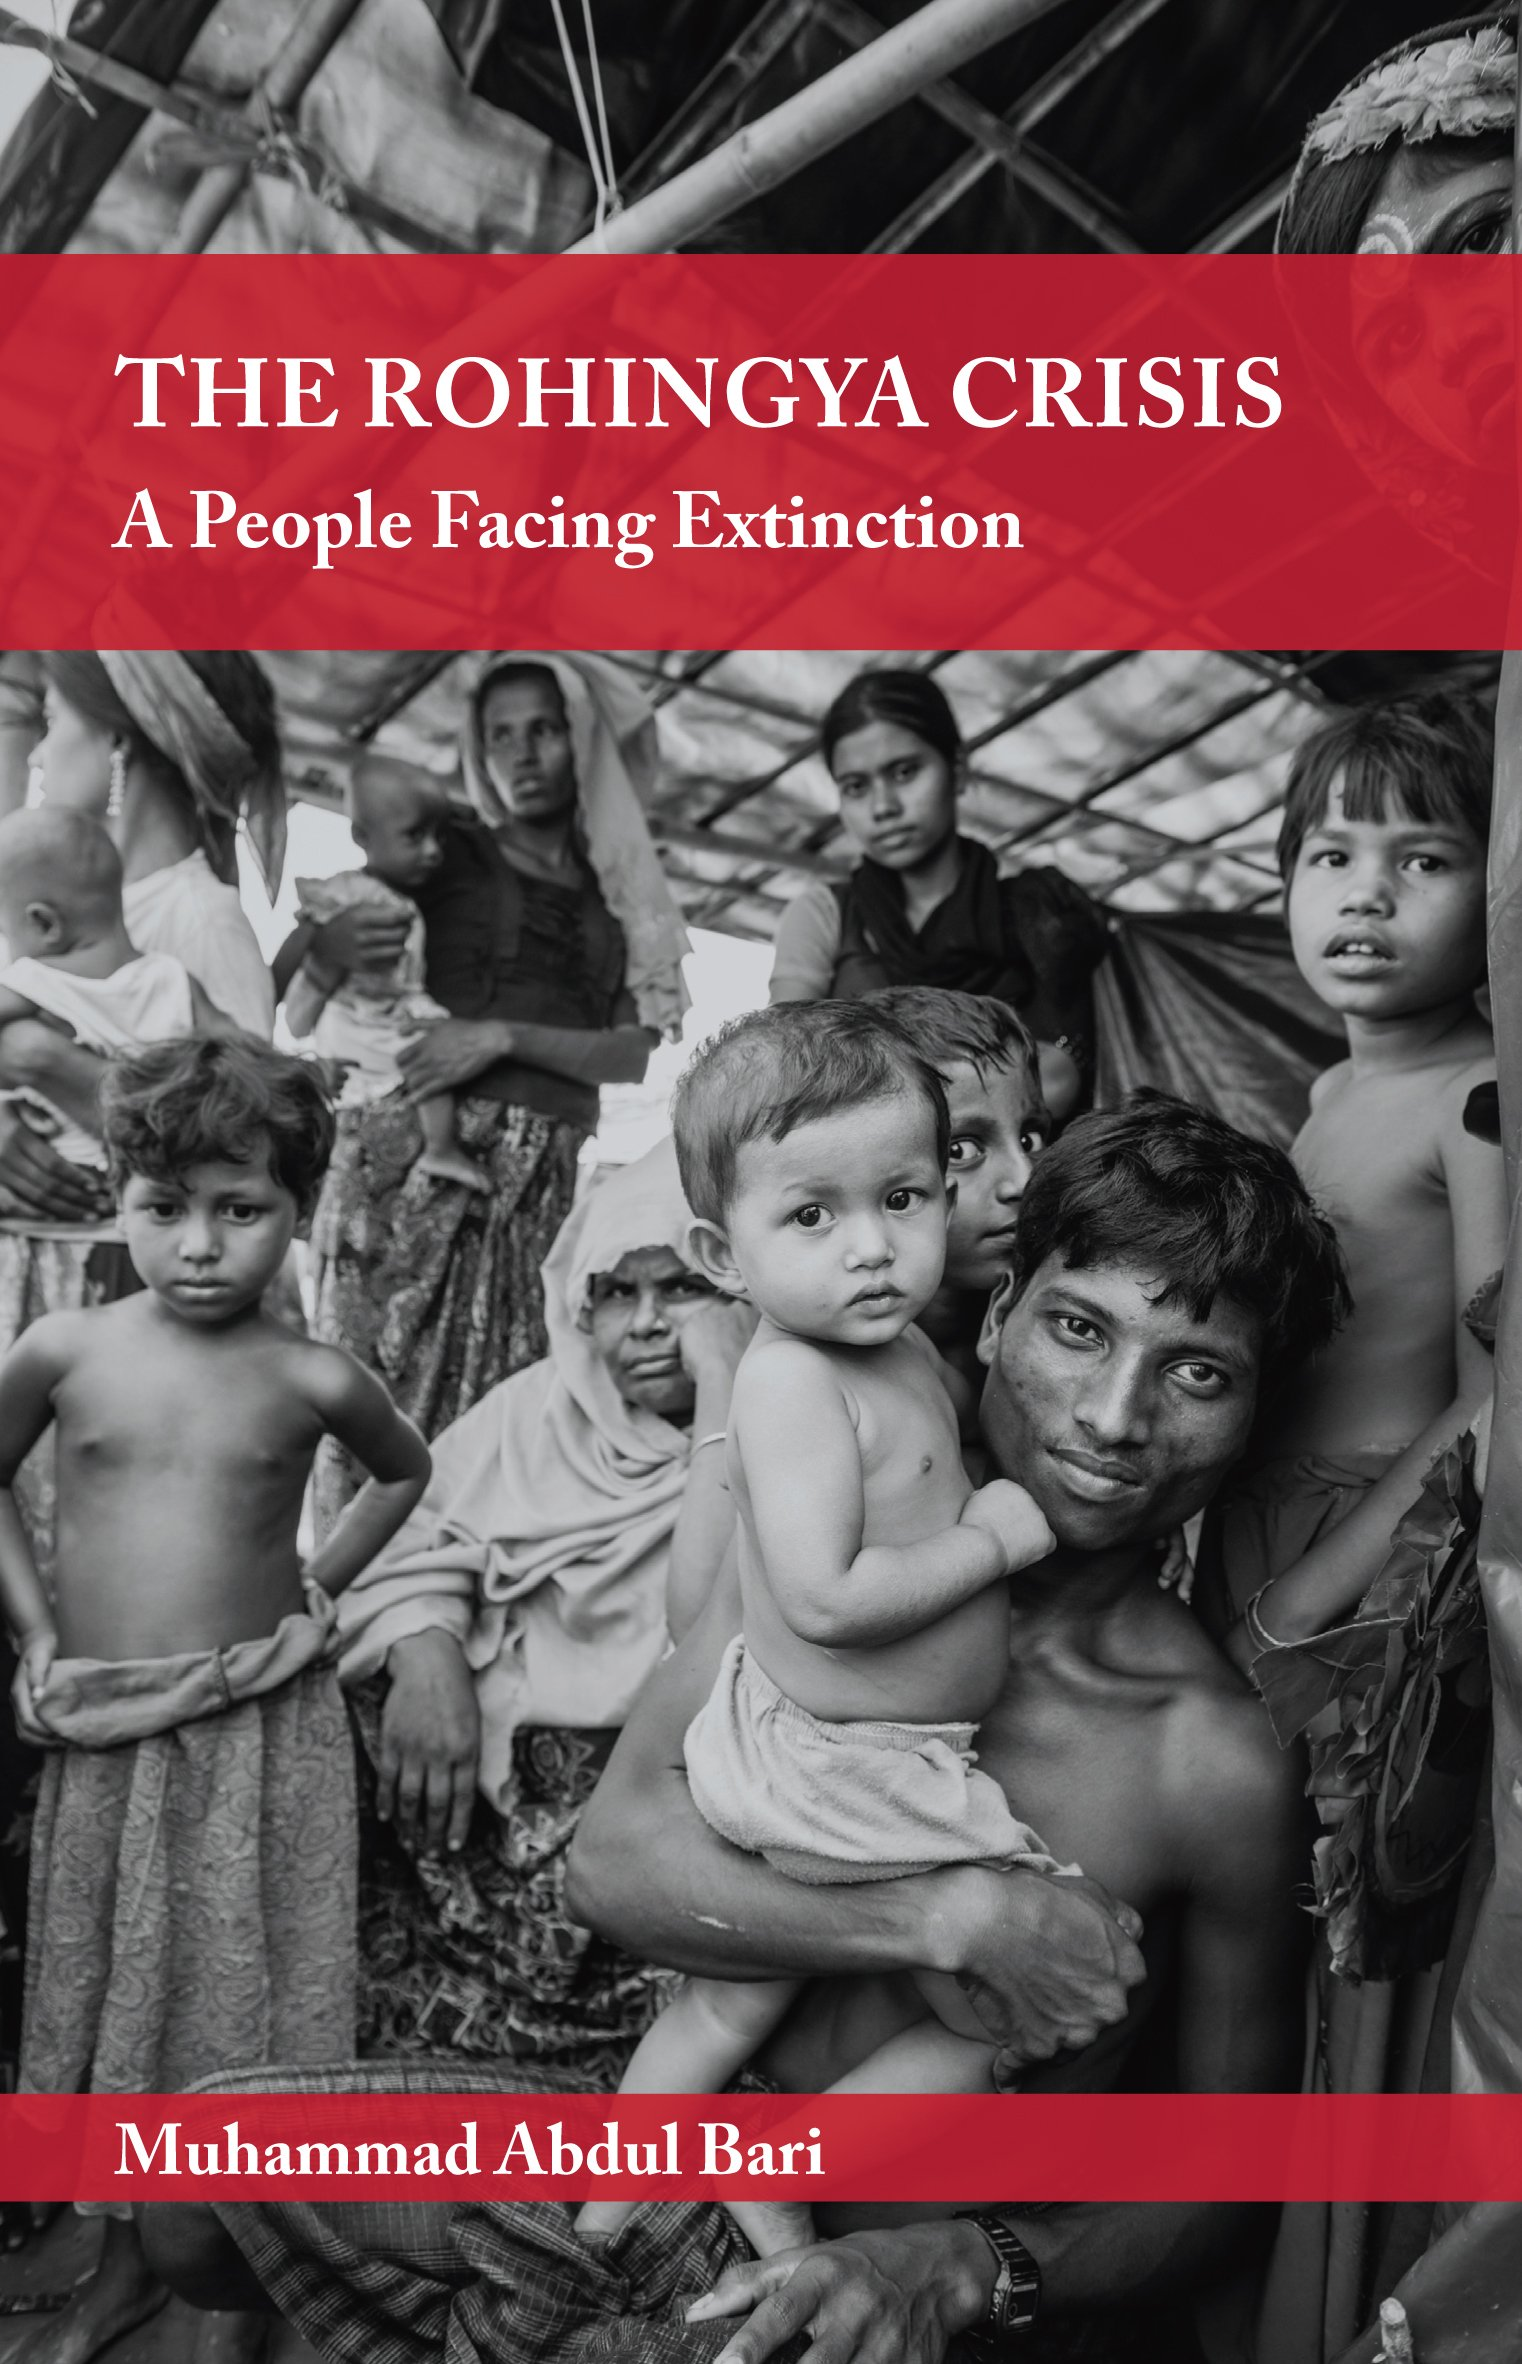 Review—The Rohingya Crisis: A People Facing Extinction by Muhammad Abdul Bari